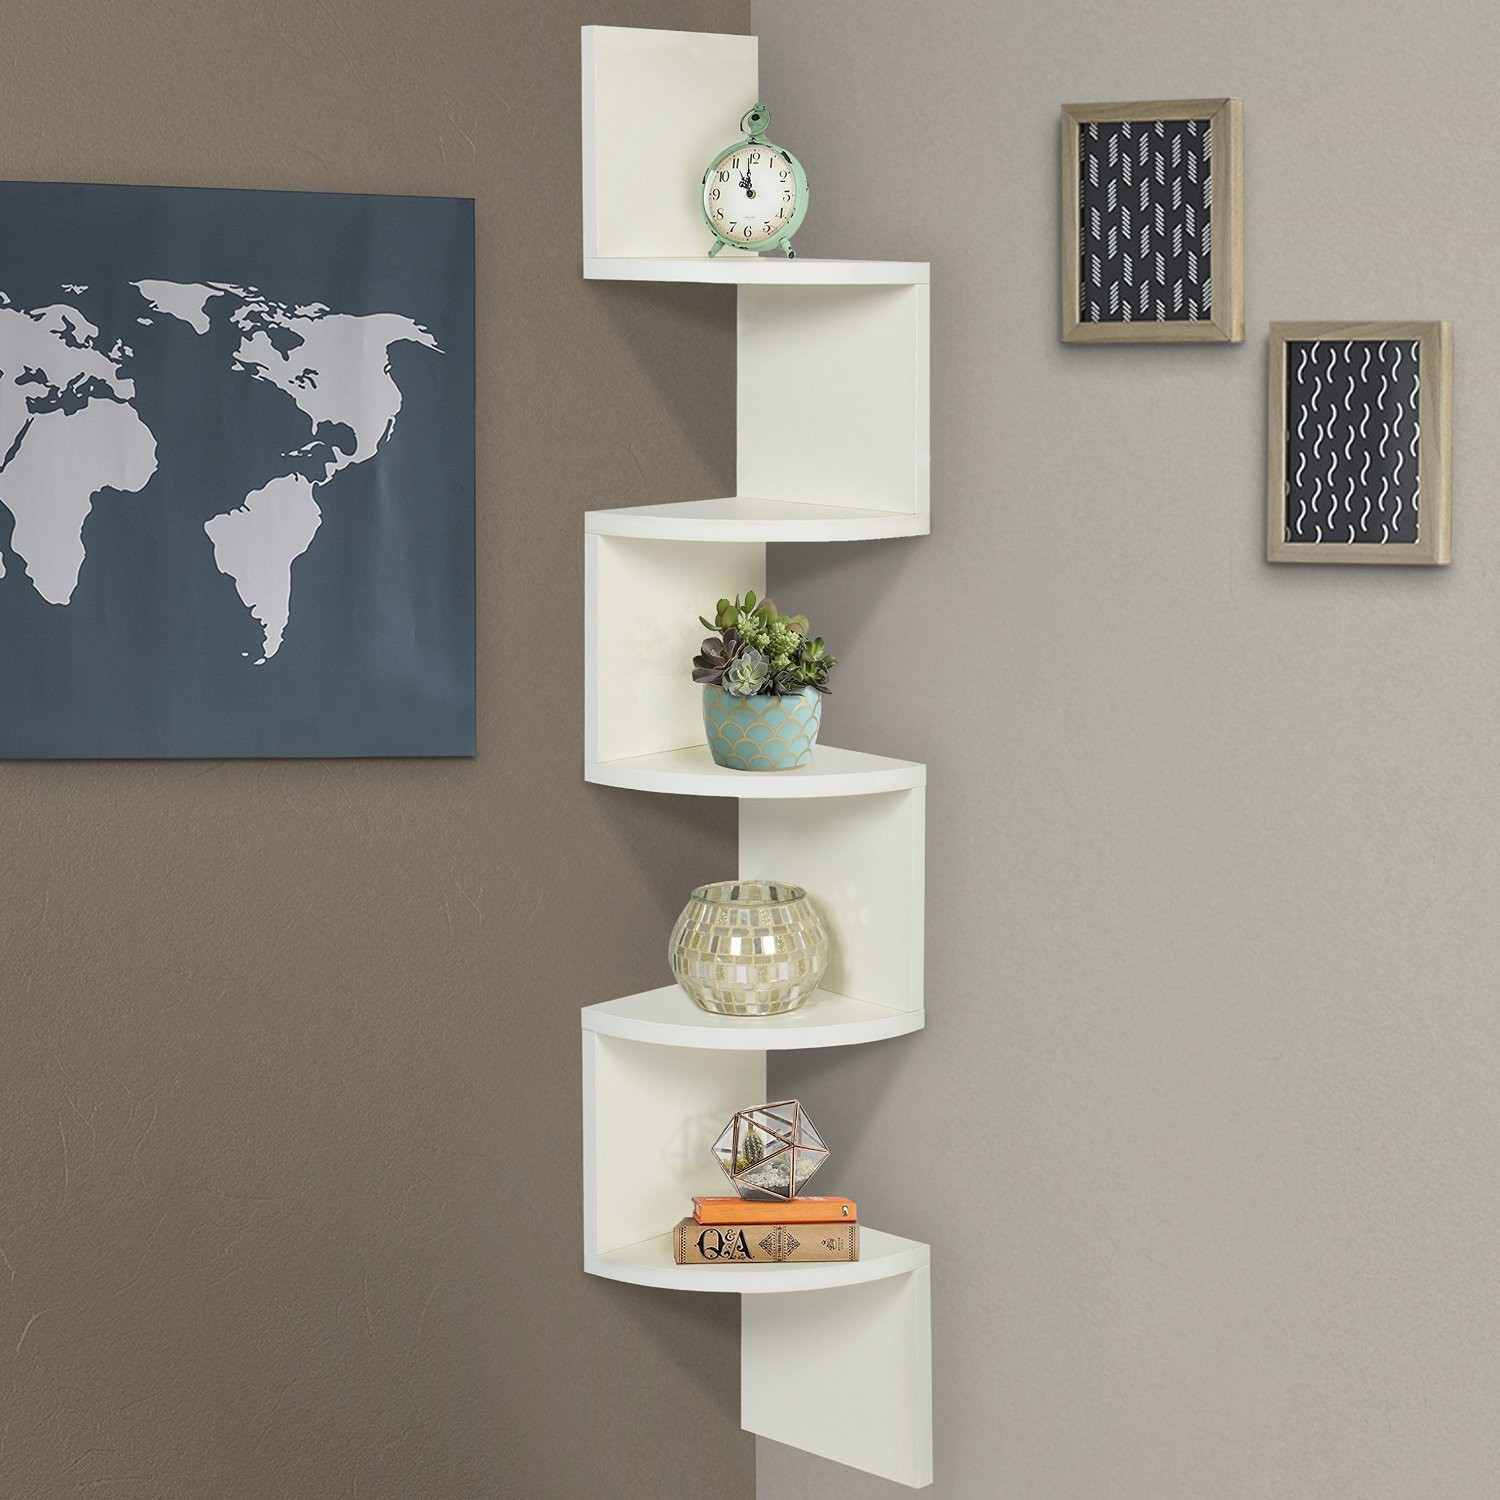 View Decoration Shop Wall Zig Zag corner MDF Wall Shelf(Number of Shelves - 1, White) Furniture (Decoration Shop)